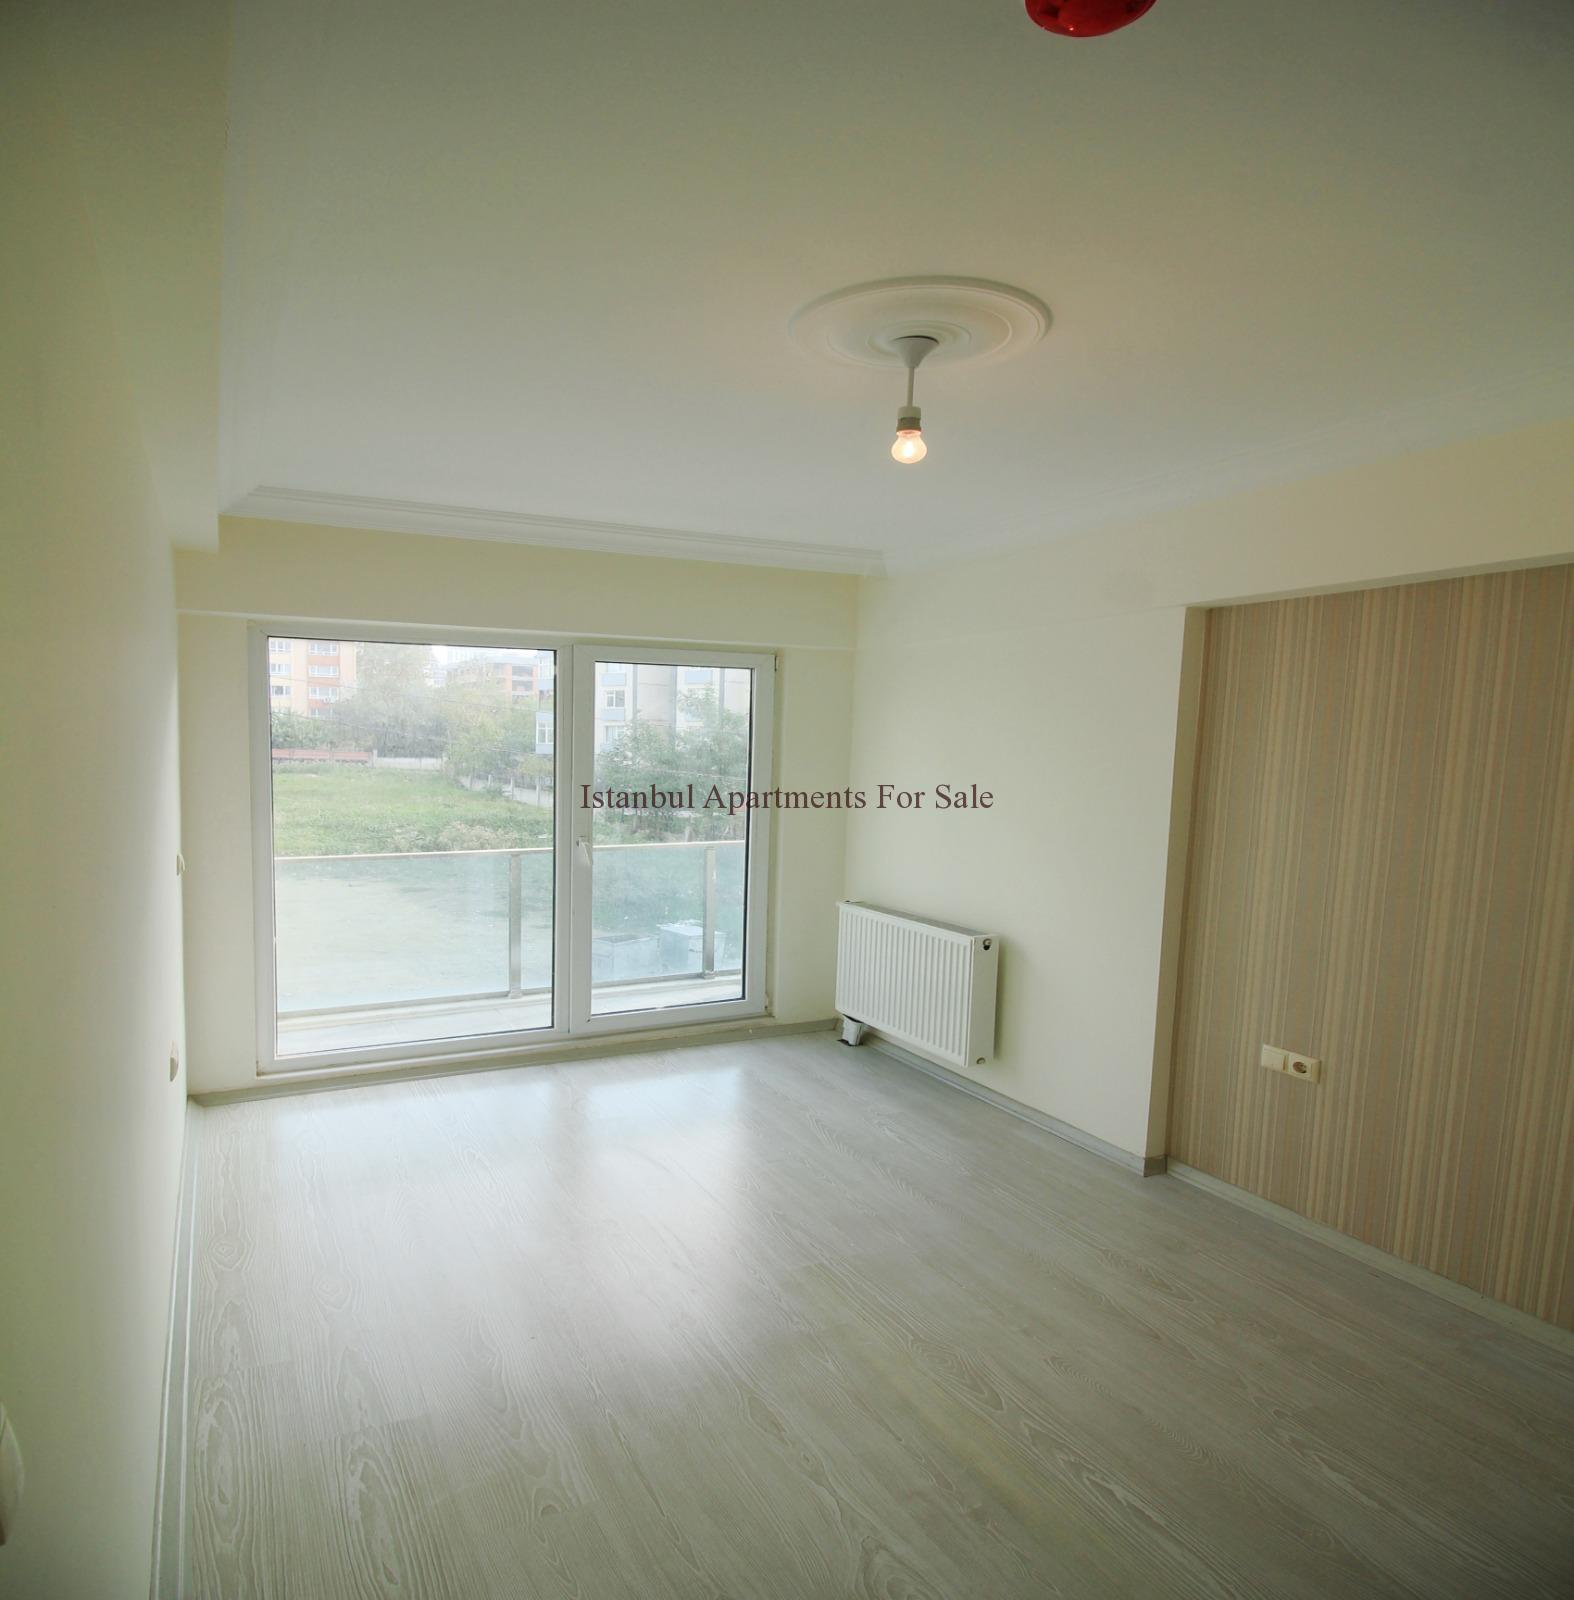 Cheap Apartments In: Cheap Ready To Move Family Apartments In Istanbul